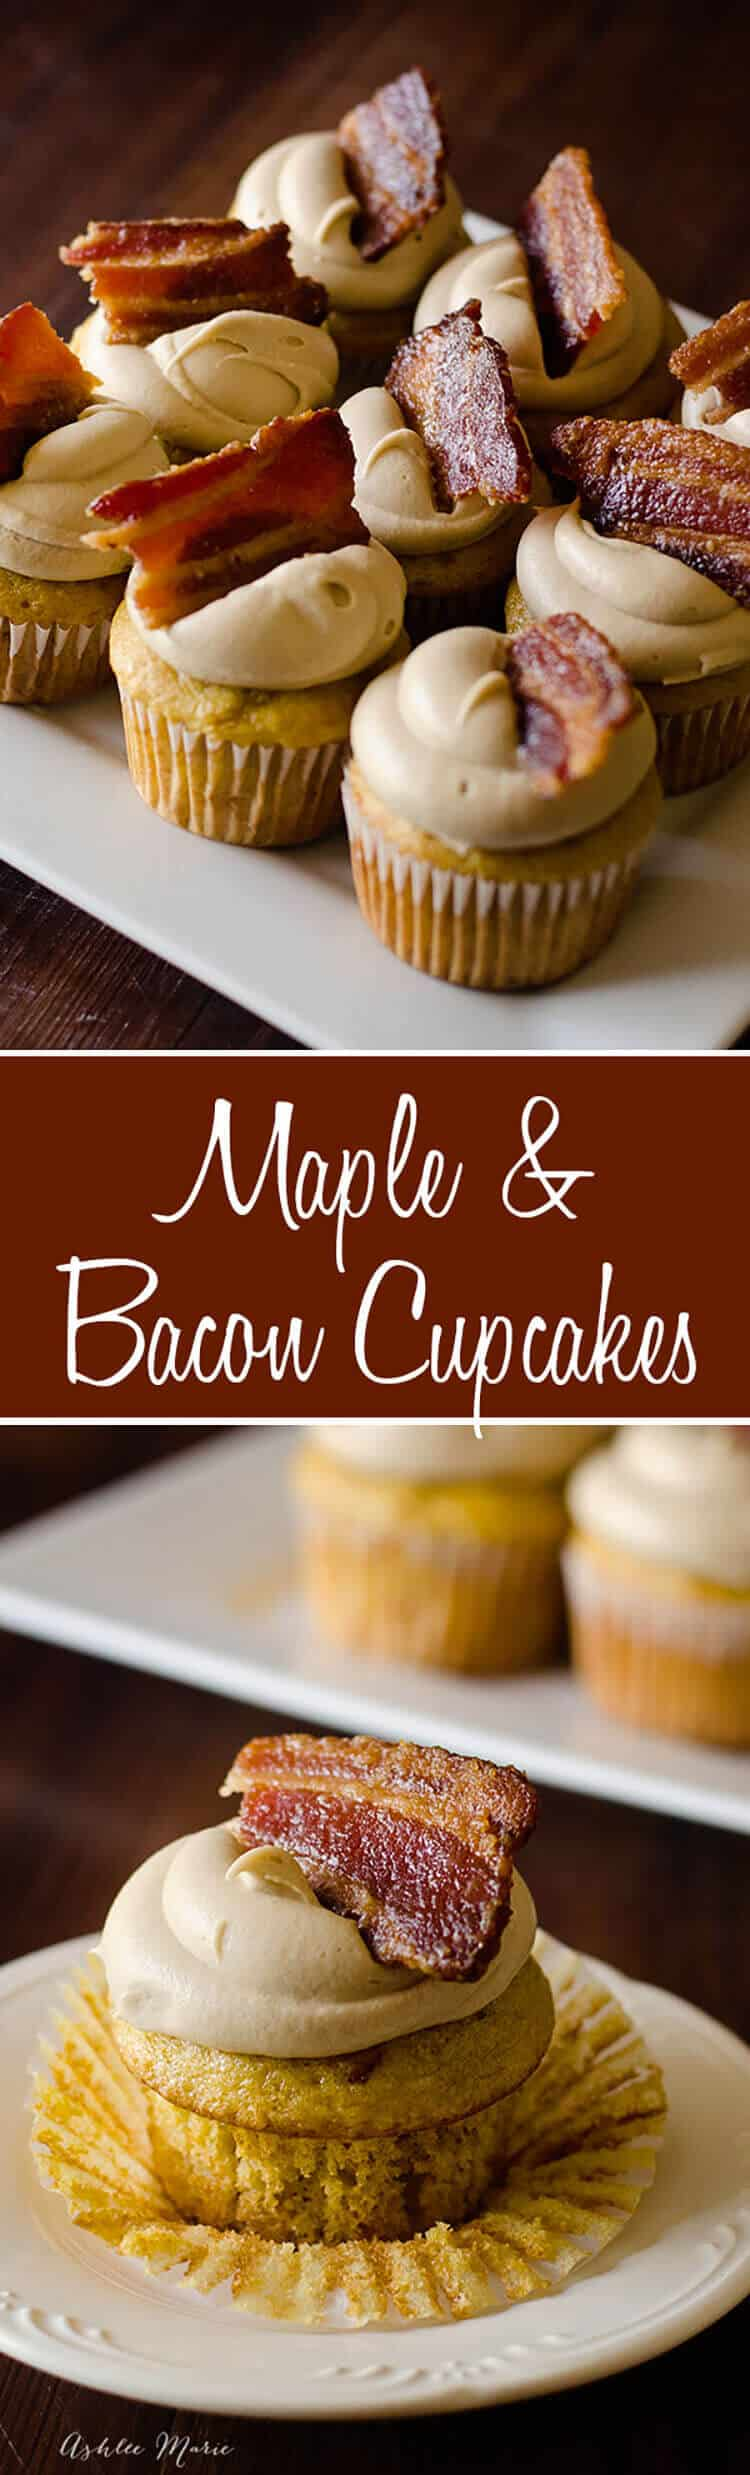 it doesnt get much better than candied bacon and maple, I mean its just so good. These cupcakes are easy to make and a huge hit with everyone. a copycat recipe from epcot d